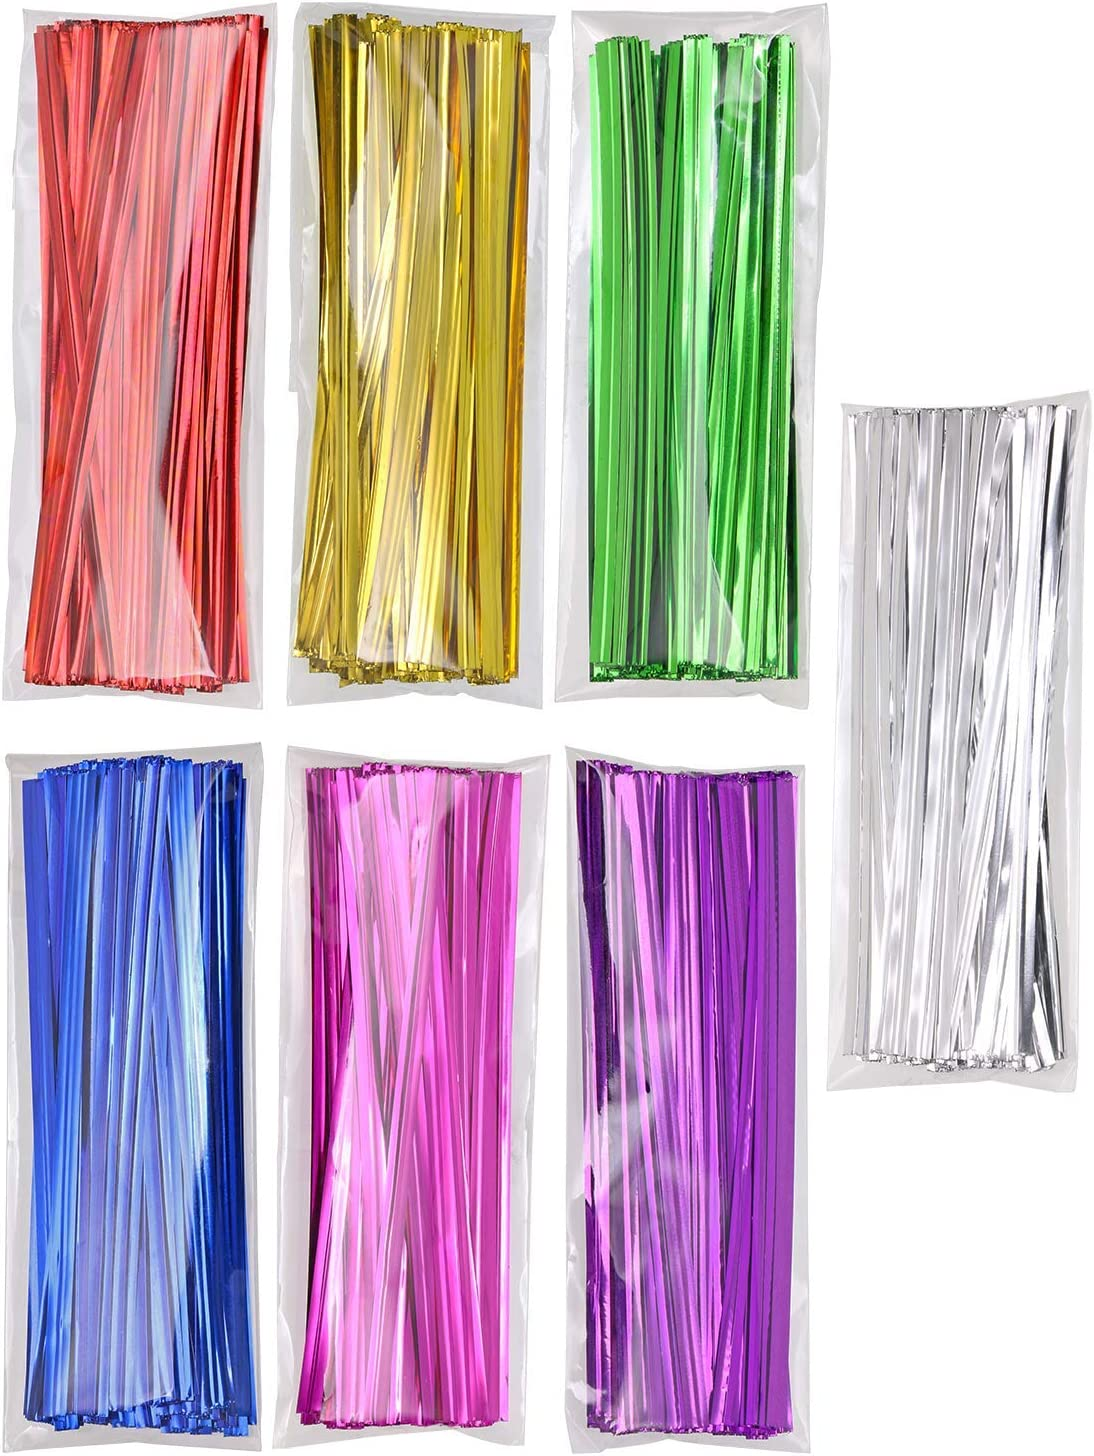 Gold Color Mini Skater 6 Inch Colored Metallic Twist Ties for Tying Gift Bags Art Craft Ties Party Decoration